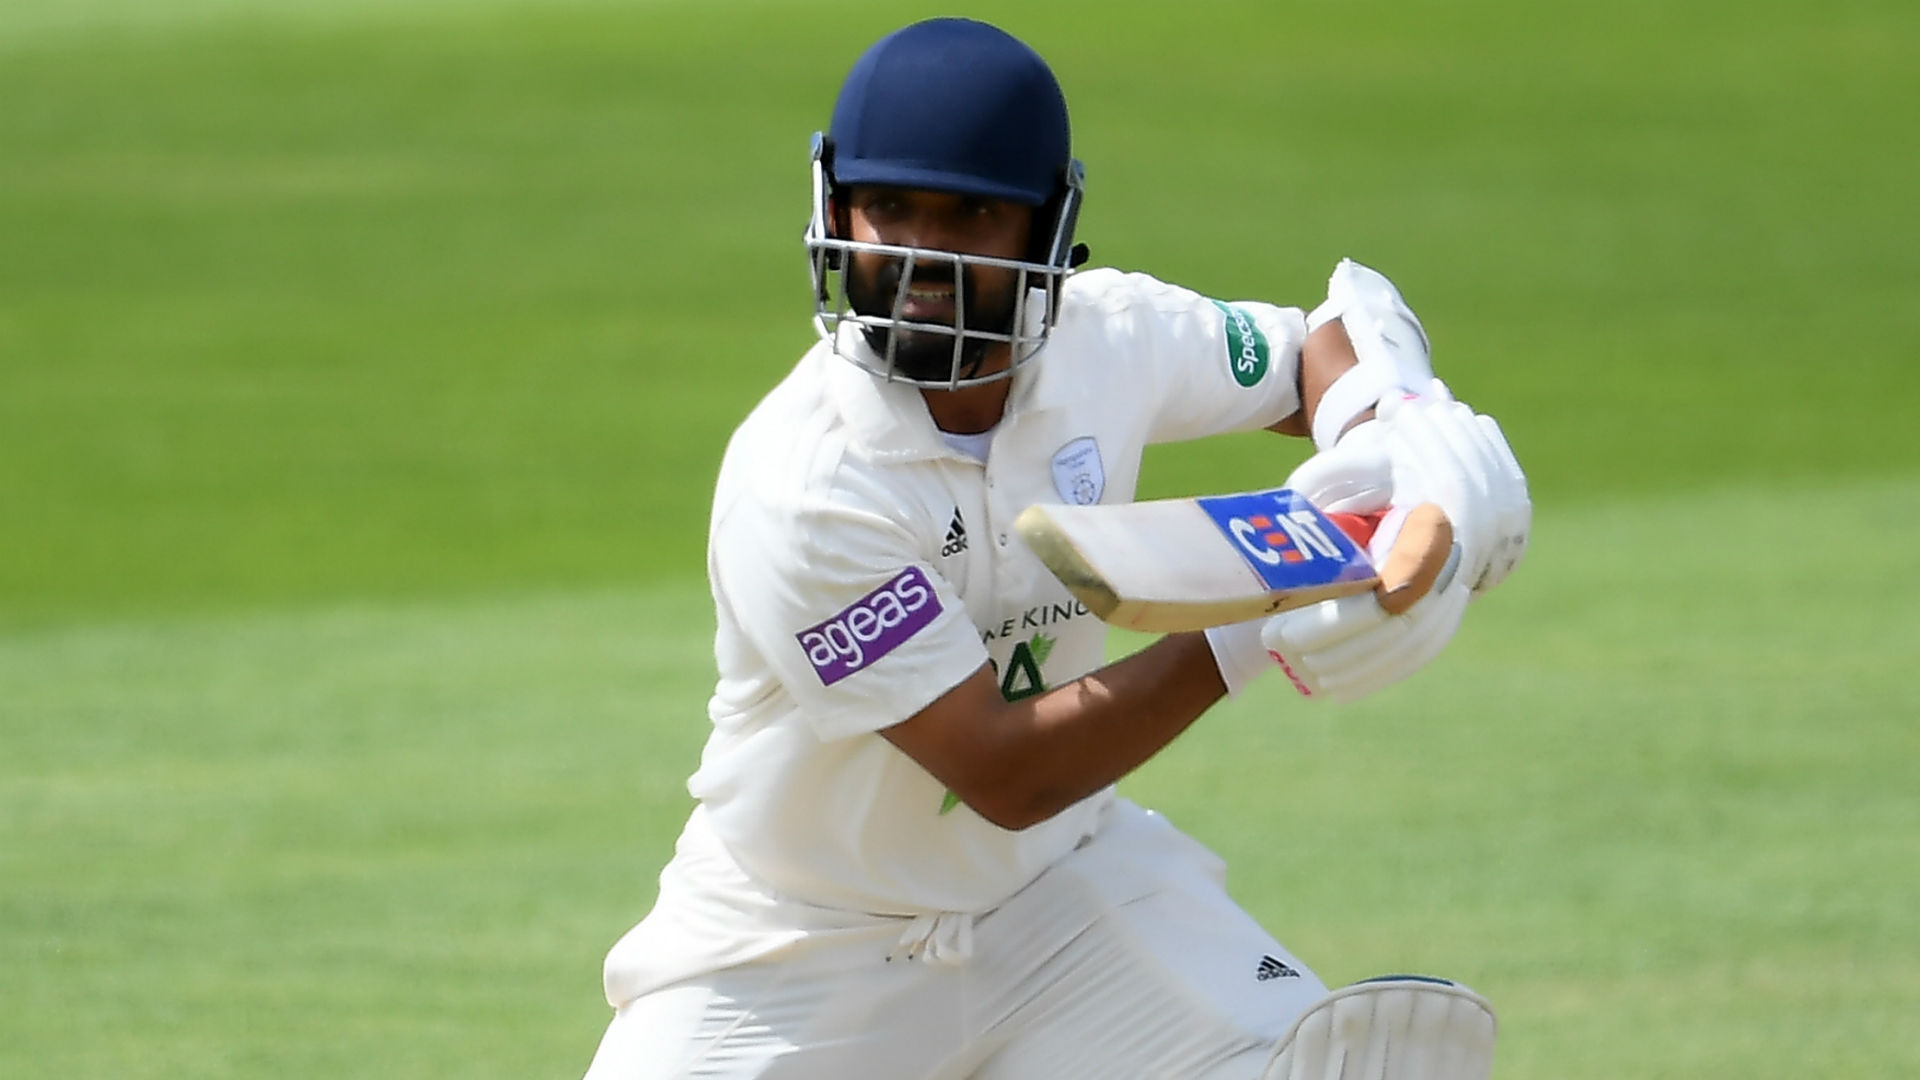 Rahane heads to Delhi Capitals as IPL teams make squad moves ahead of auction